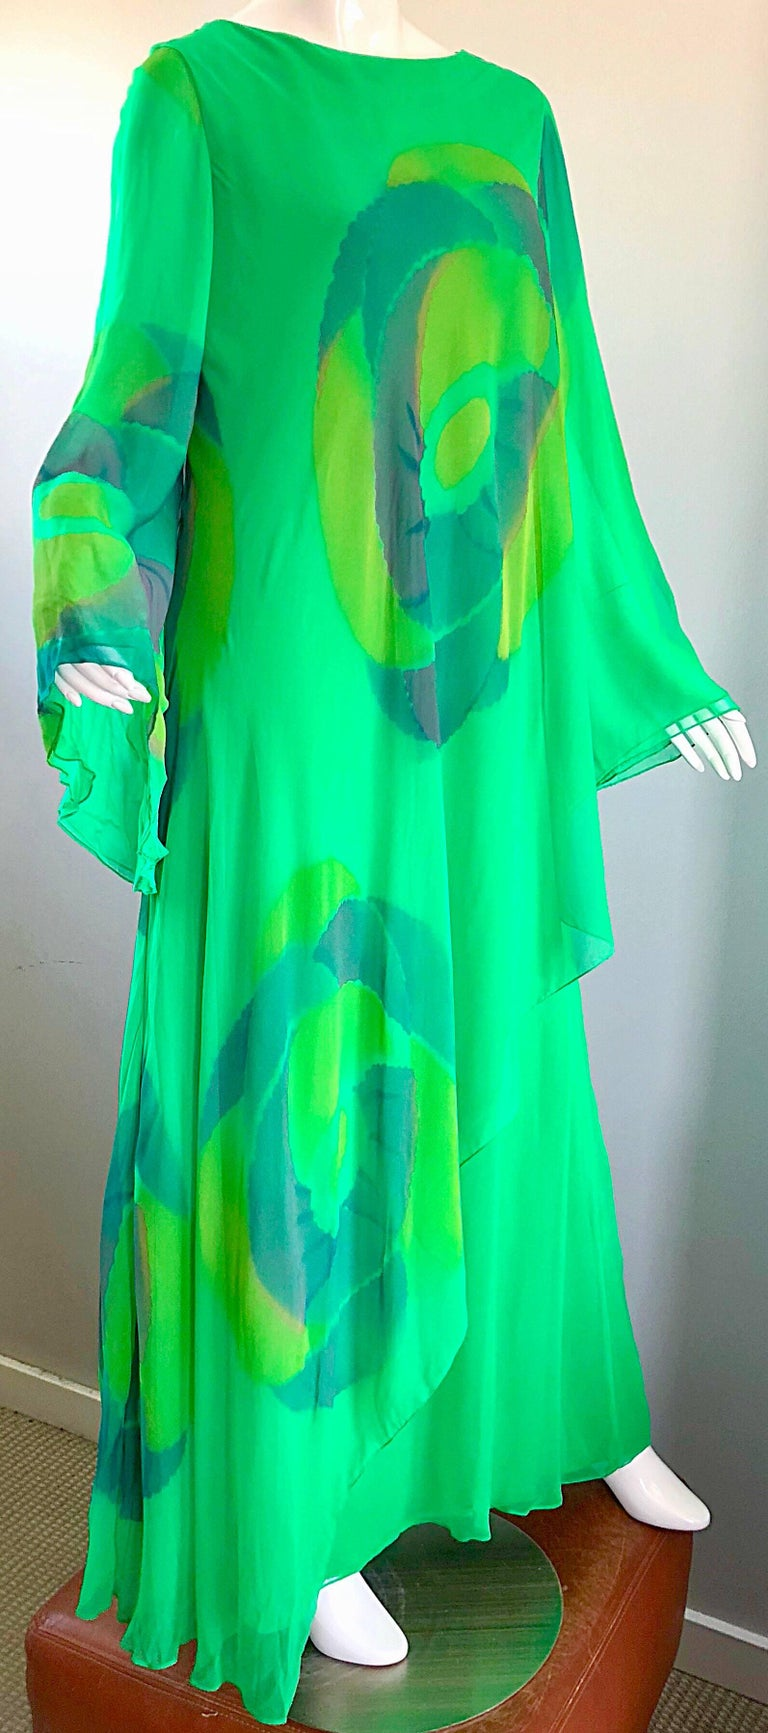 Vintage Travillia Couture 1970s Hand Painted Kelly Green Silk Chiffon 70s Gown For Sale 2